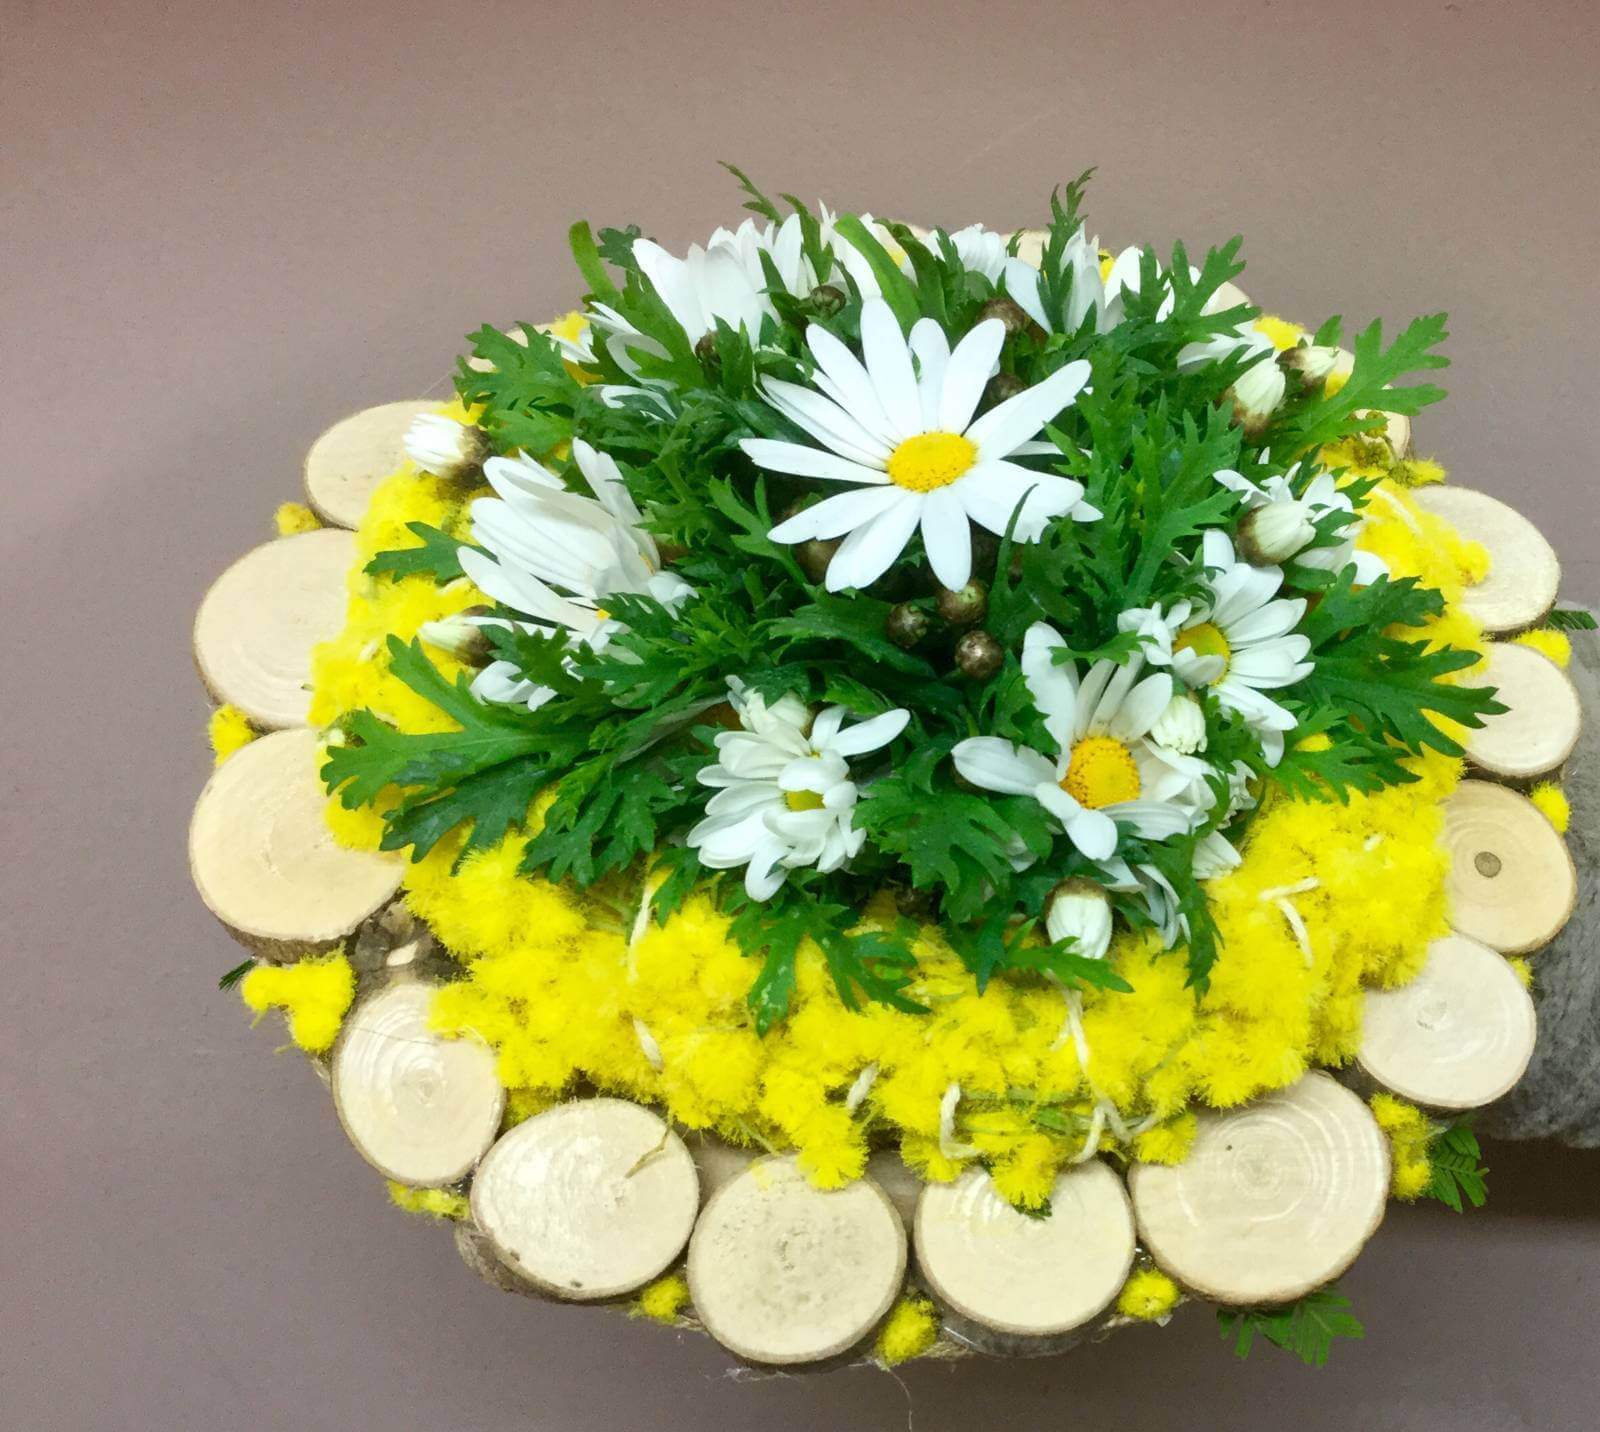 Bouquet and floral arrangements to give away for March 8th